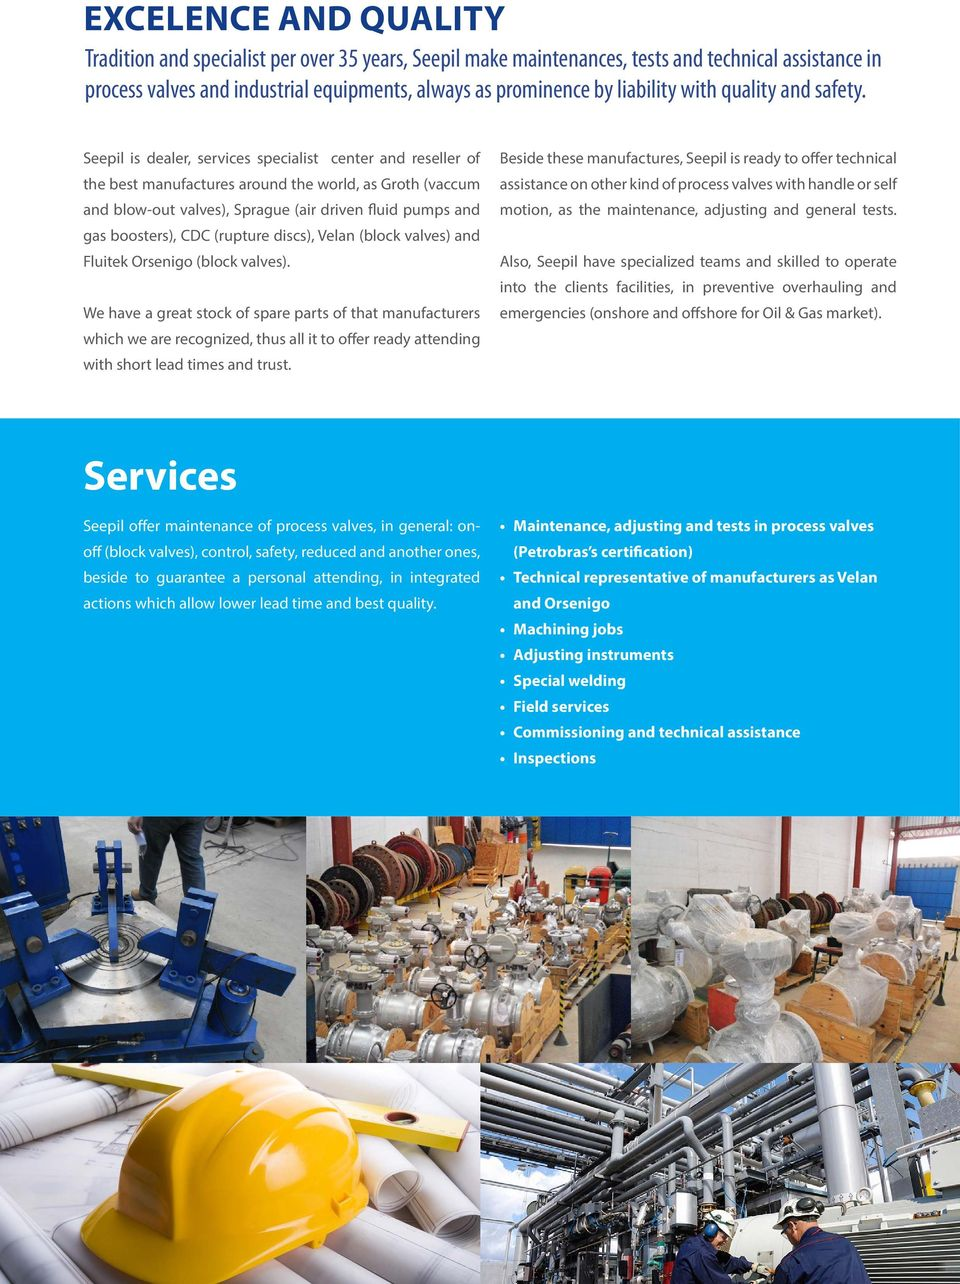 Seepil is dealer, services specialist center and reseller of the best manufactures around the world, as Groth (vaccum and blow-out valves), Sprague (air driven fluid pumps and gas boosters), CDC